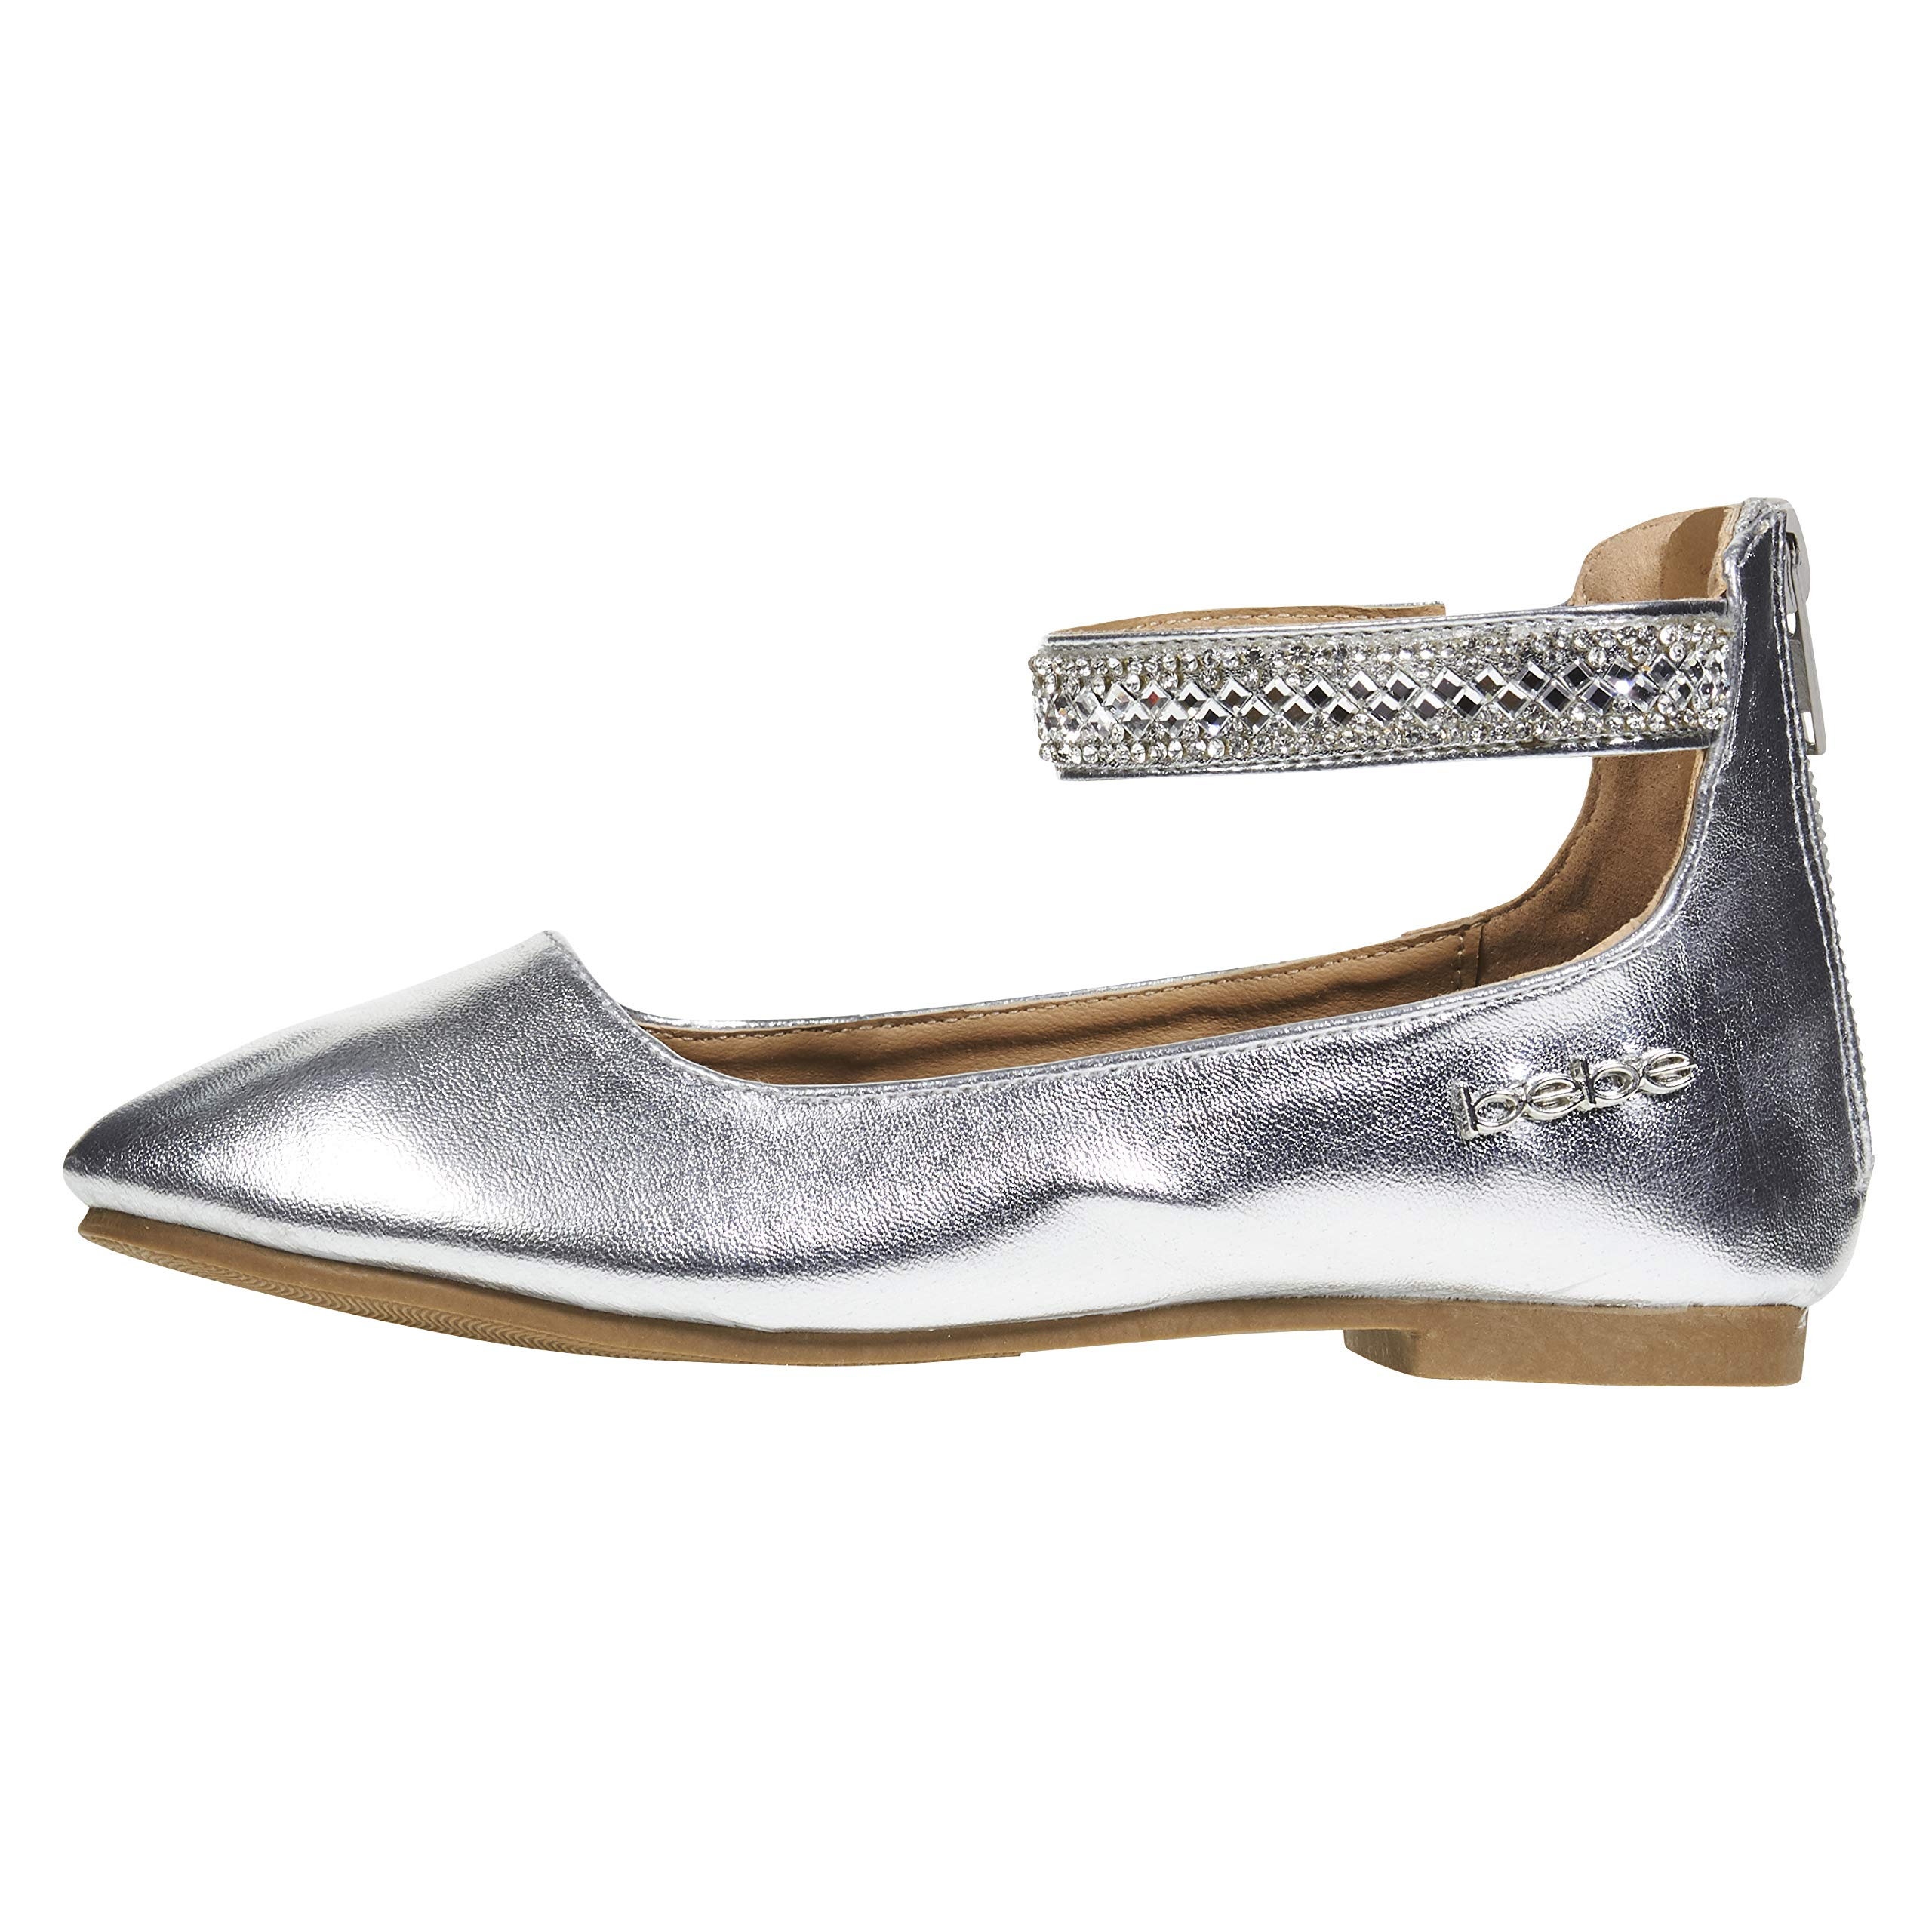 bebe Girls Flats Size 4 with Rhinestone Ankle Straps PU Leather Mary Jane Sandals Silver